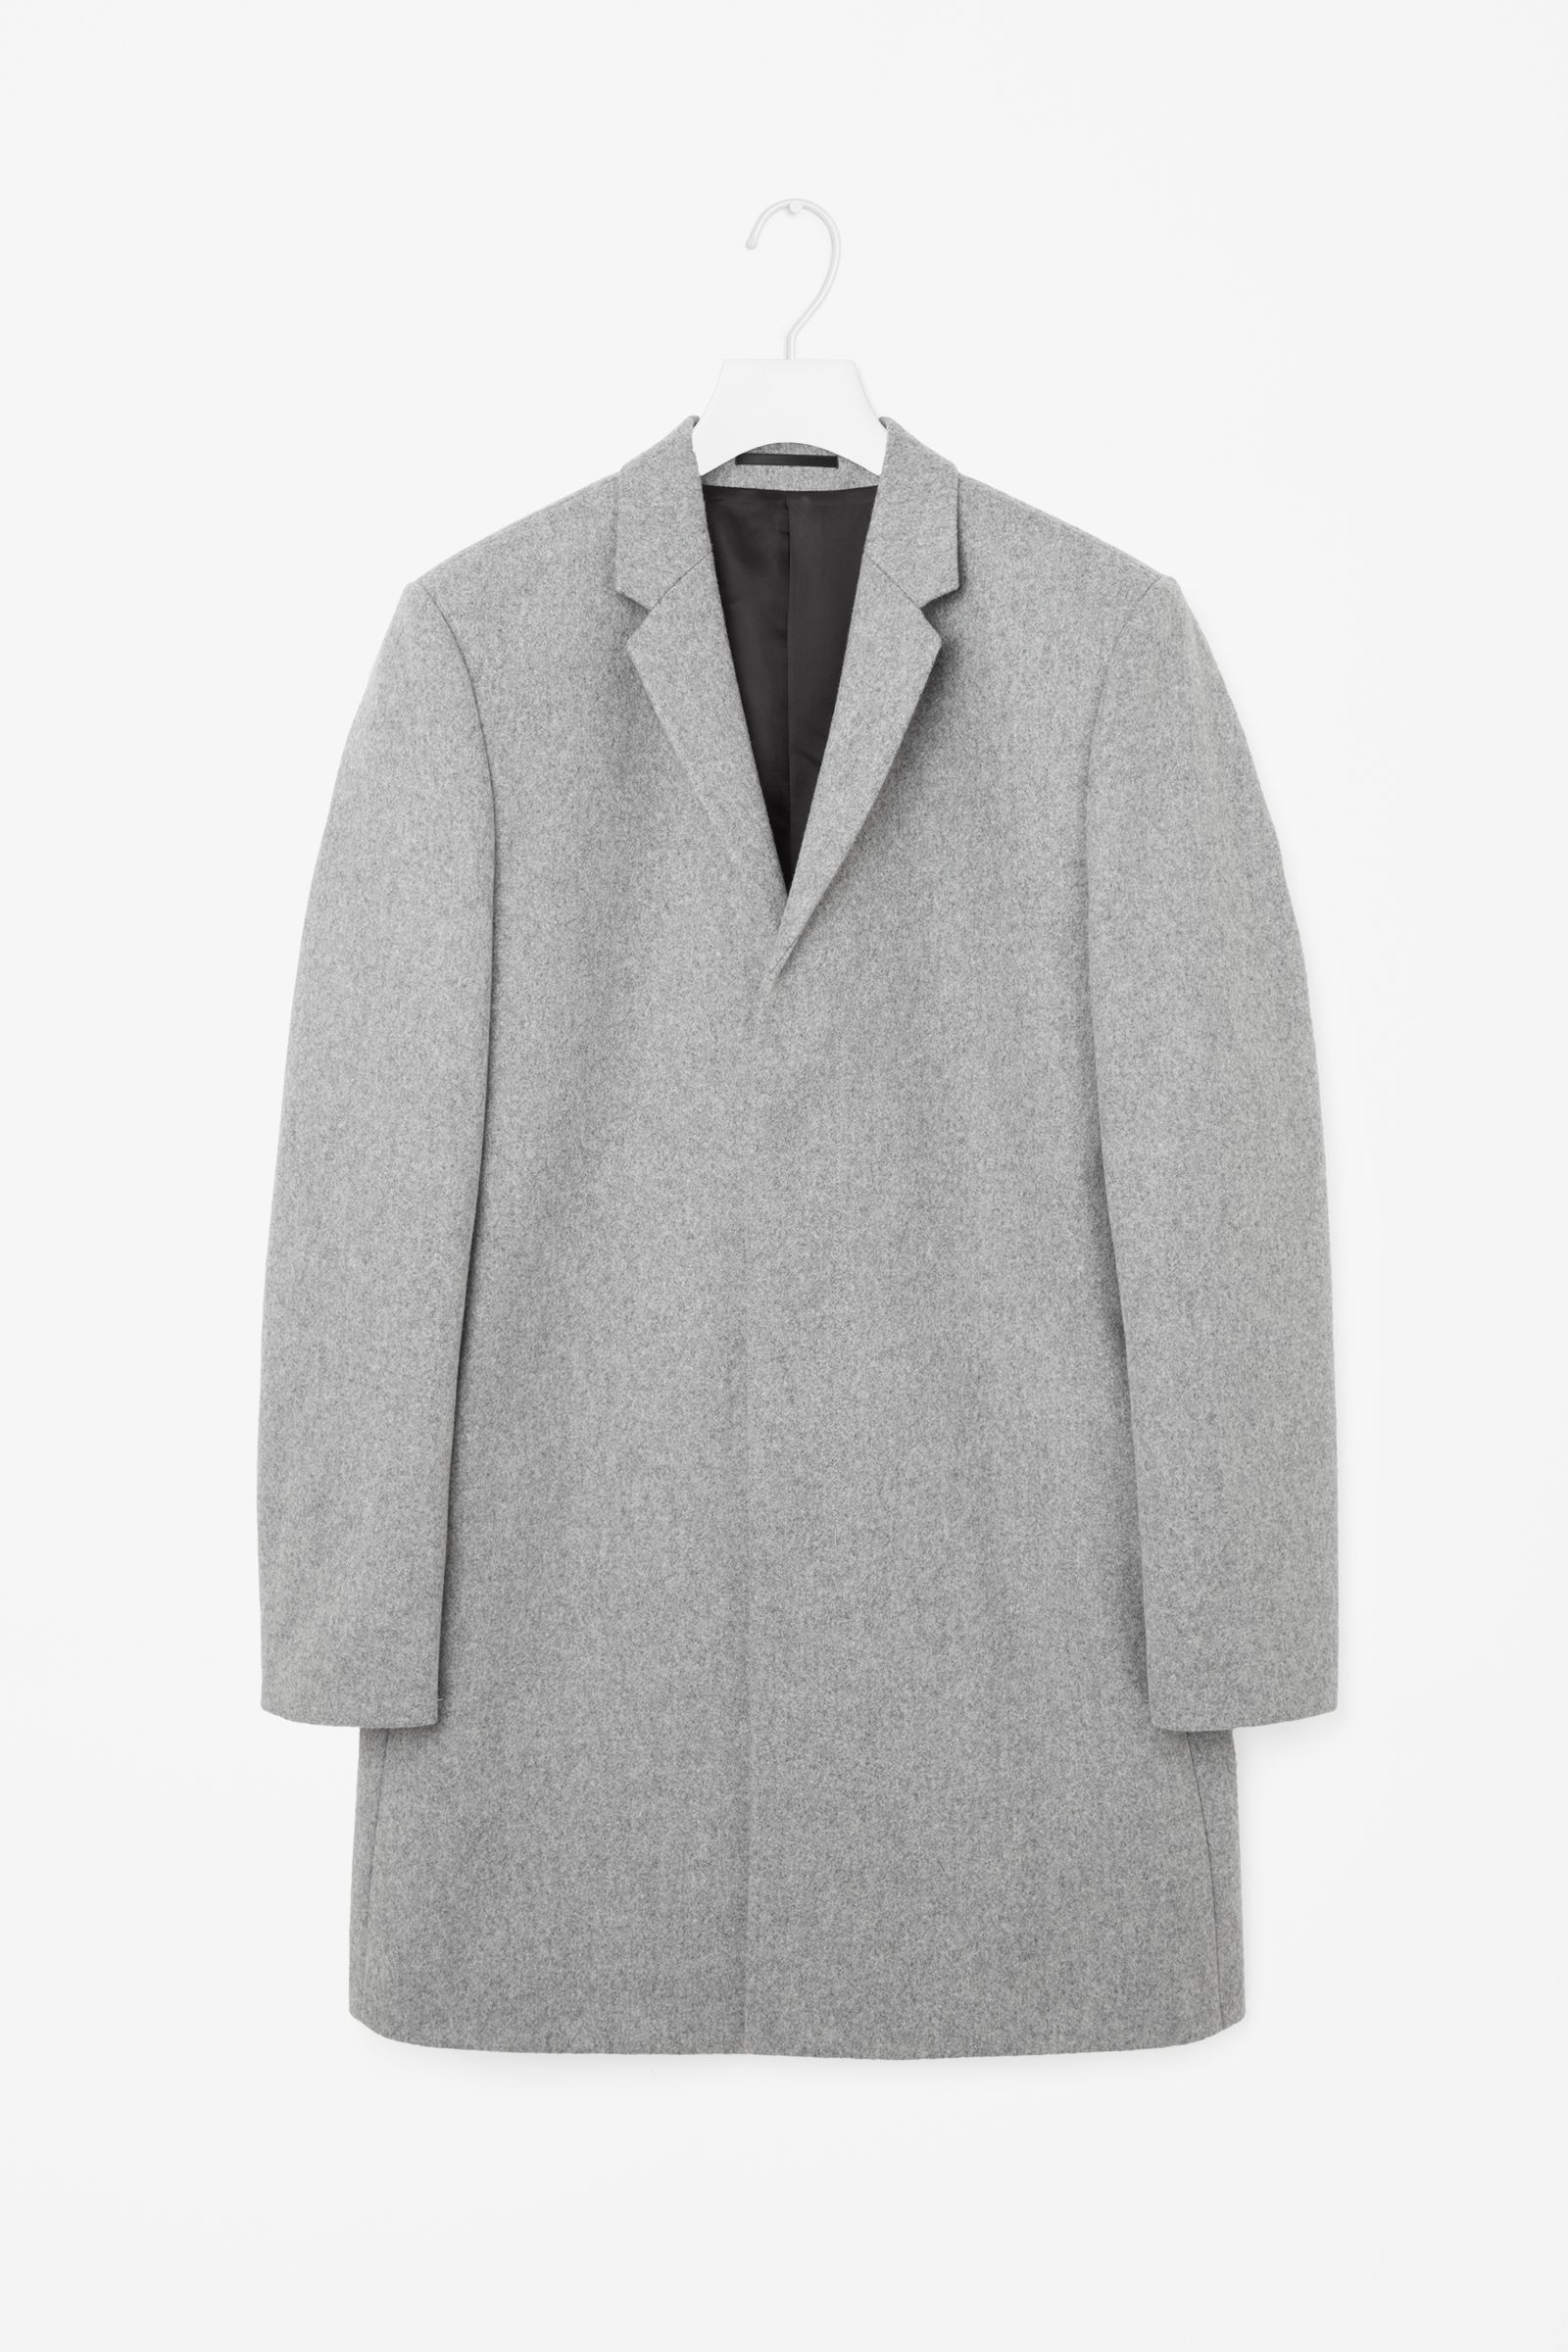 Wool coat, £175 ( cosstores.com )